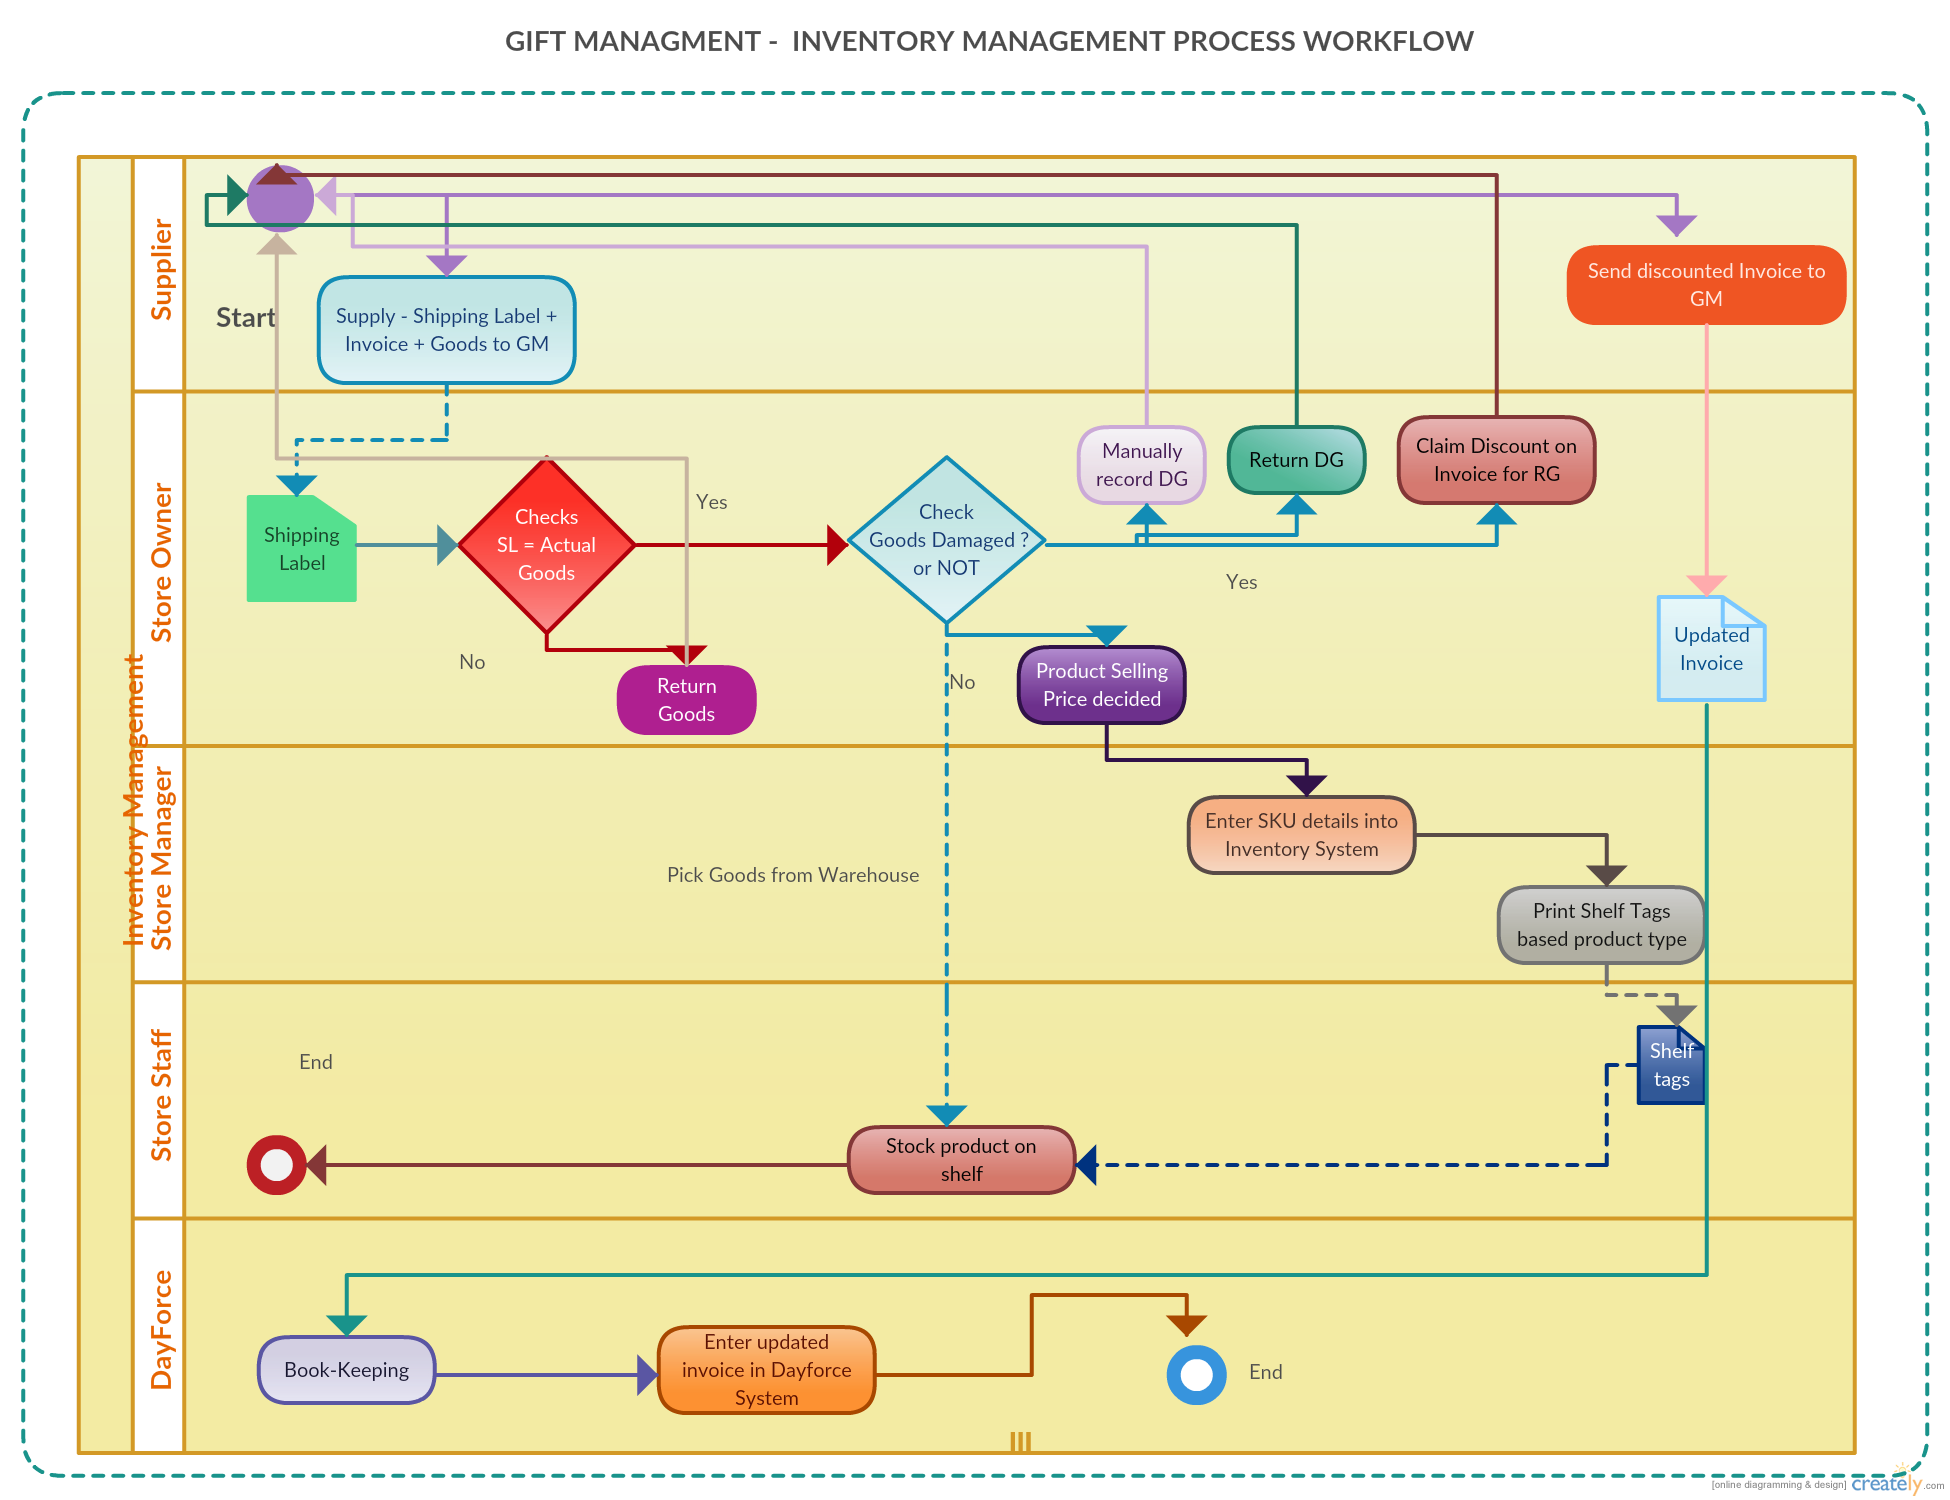 one of our customers shared their inventory management process workflow of  gift management diagram with our